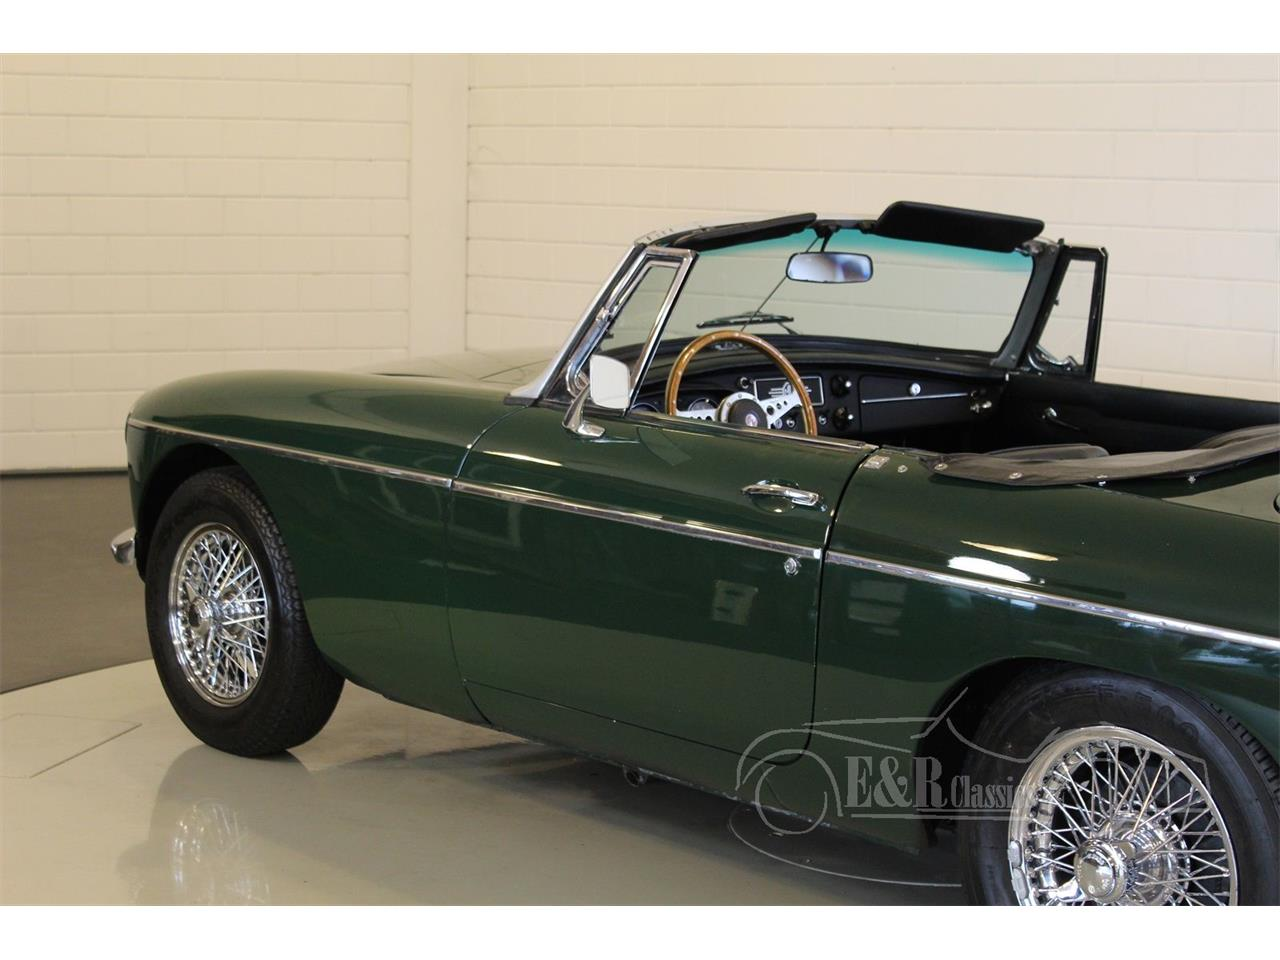 Large Picture of 1964 MGB located in Waalwijk noord brabant - $27,950.00 - Q178